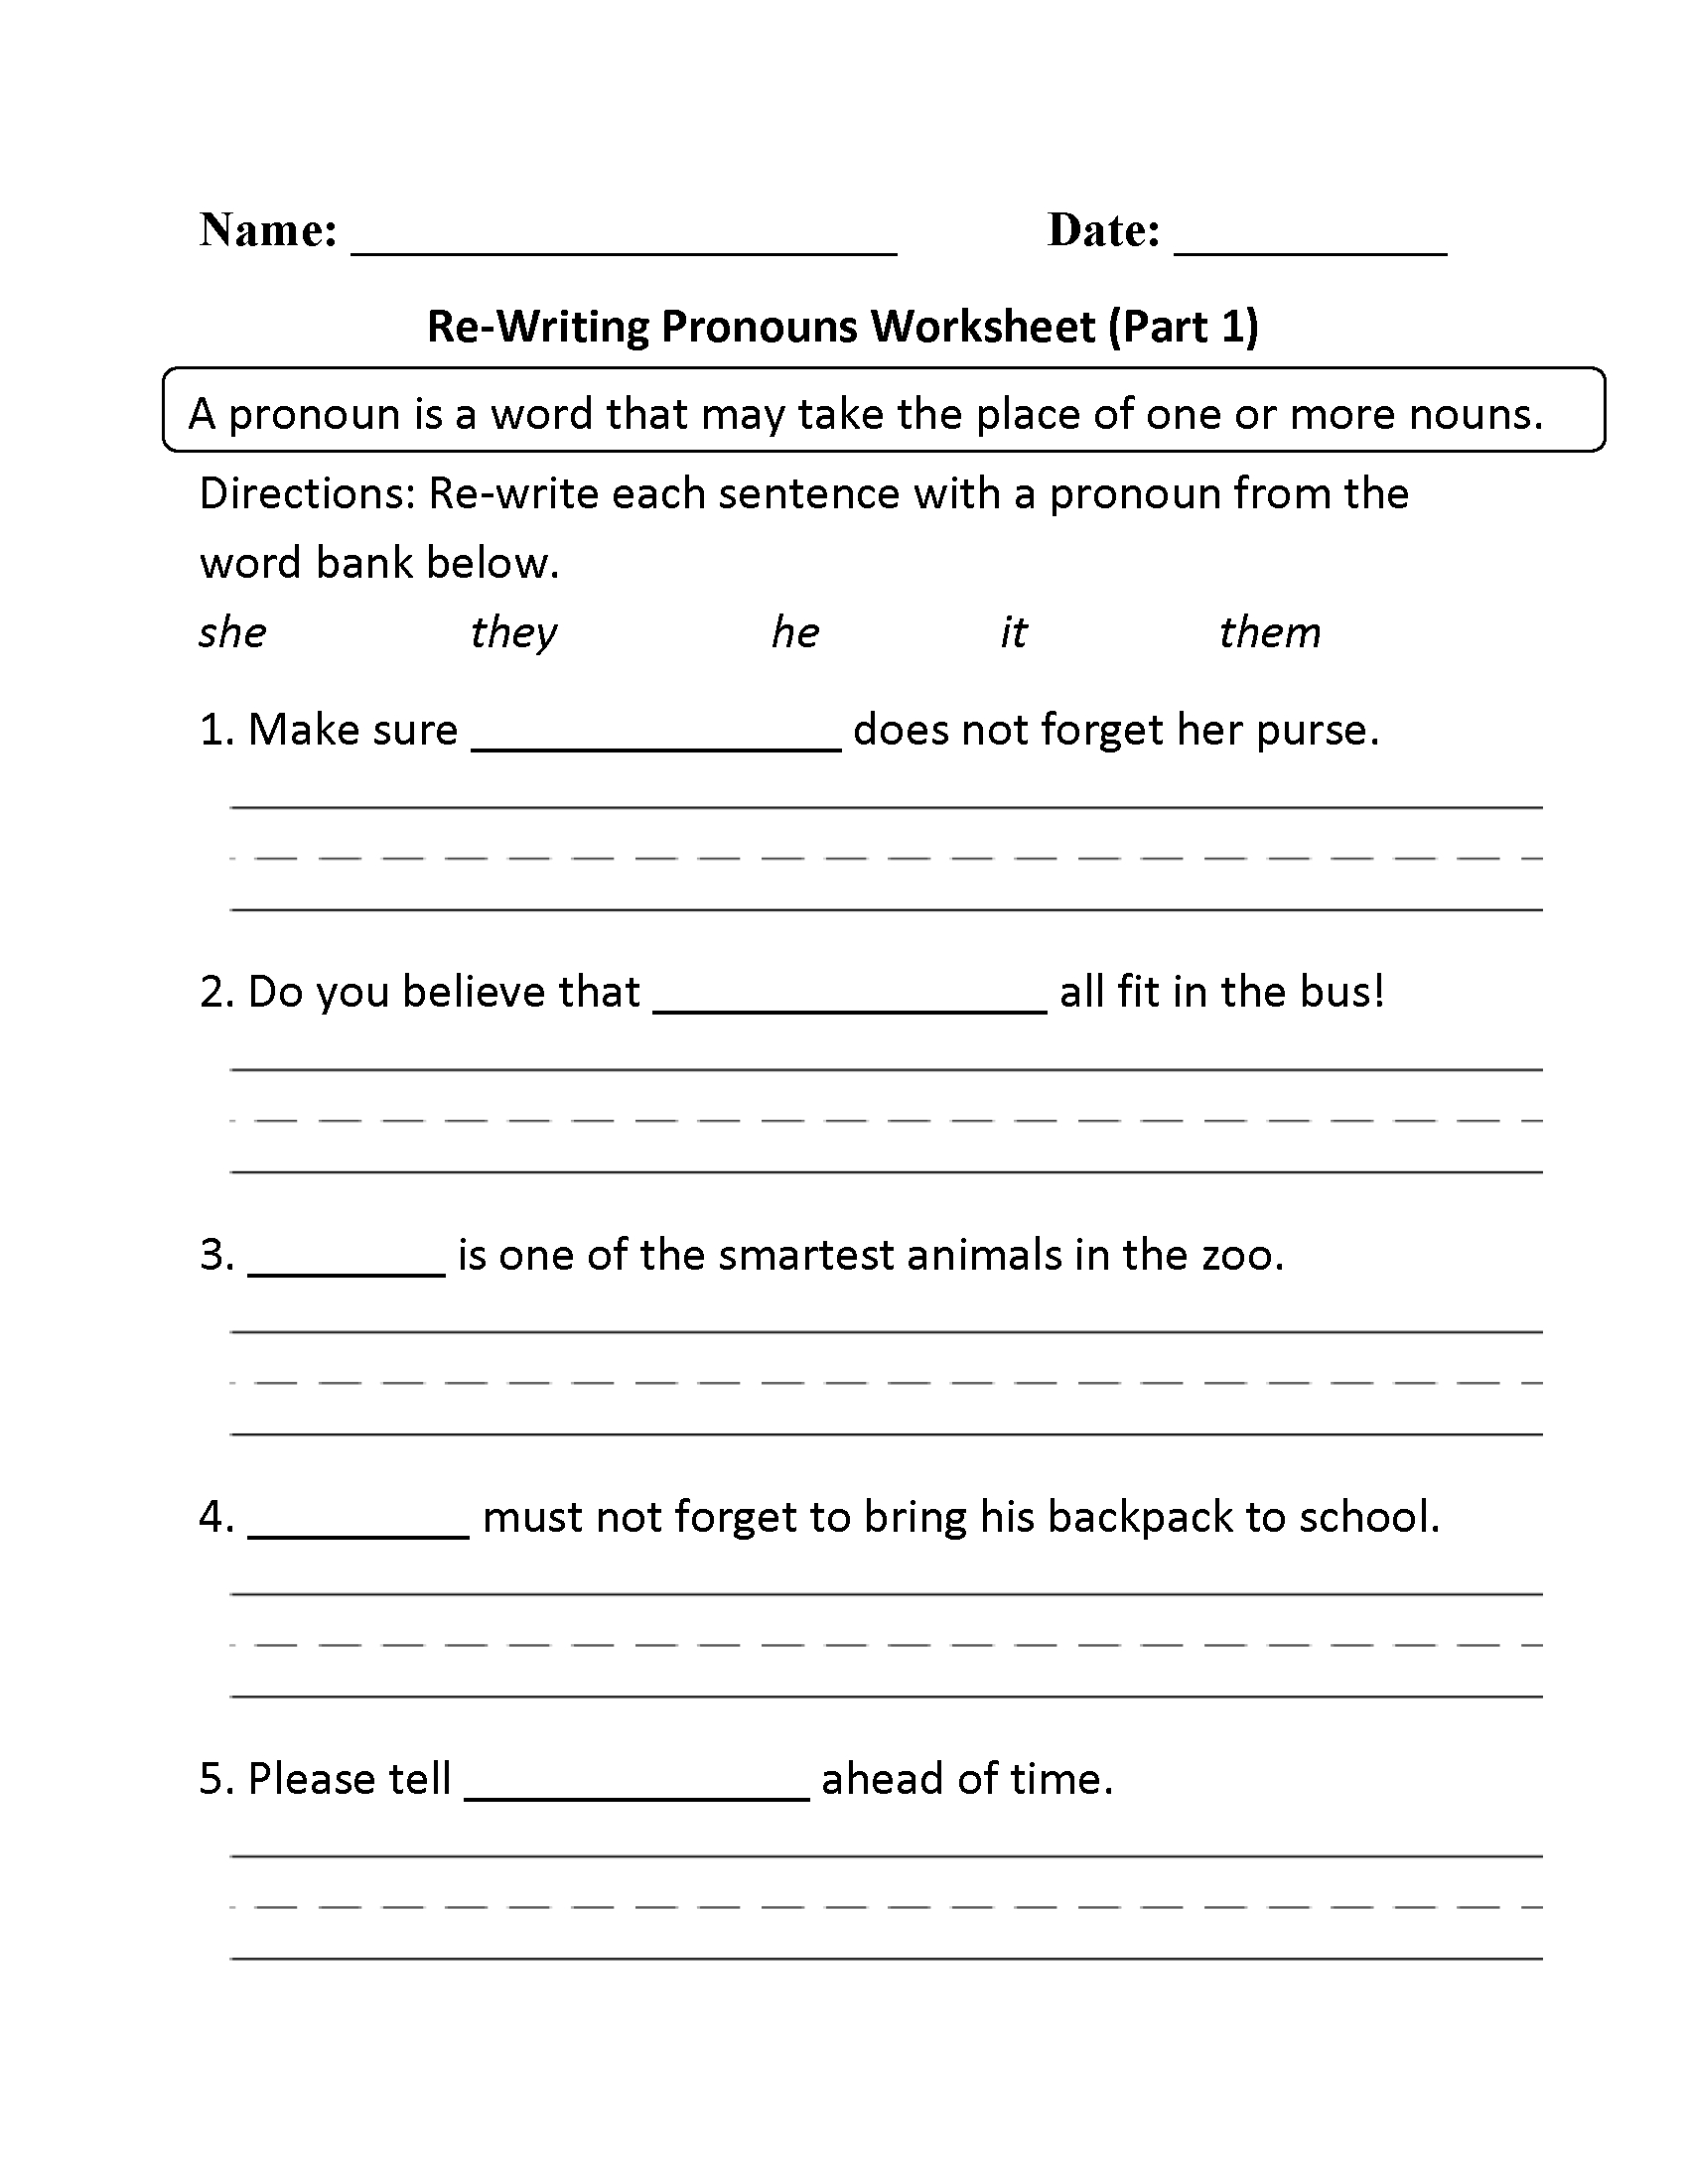 Pronouns Worksheets | Regular Pronouns Worksheets - Free Printable Pronoun Worksheets For 2Nd Grade